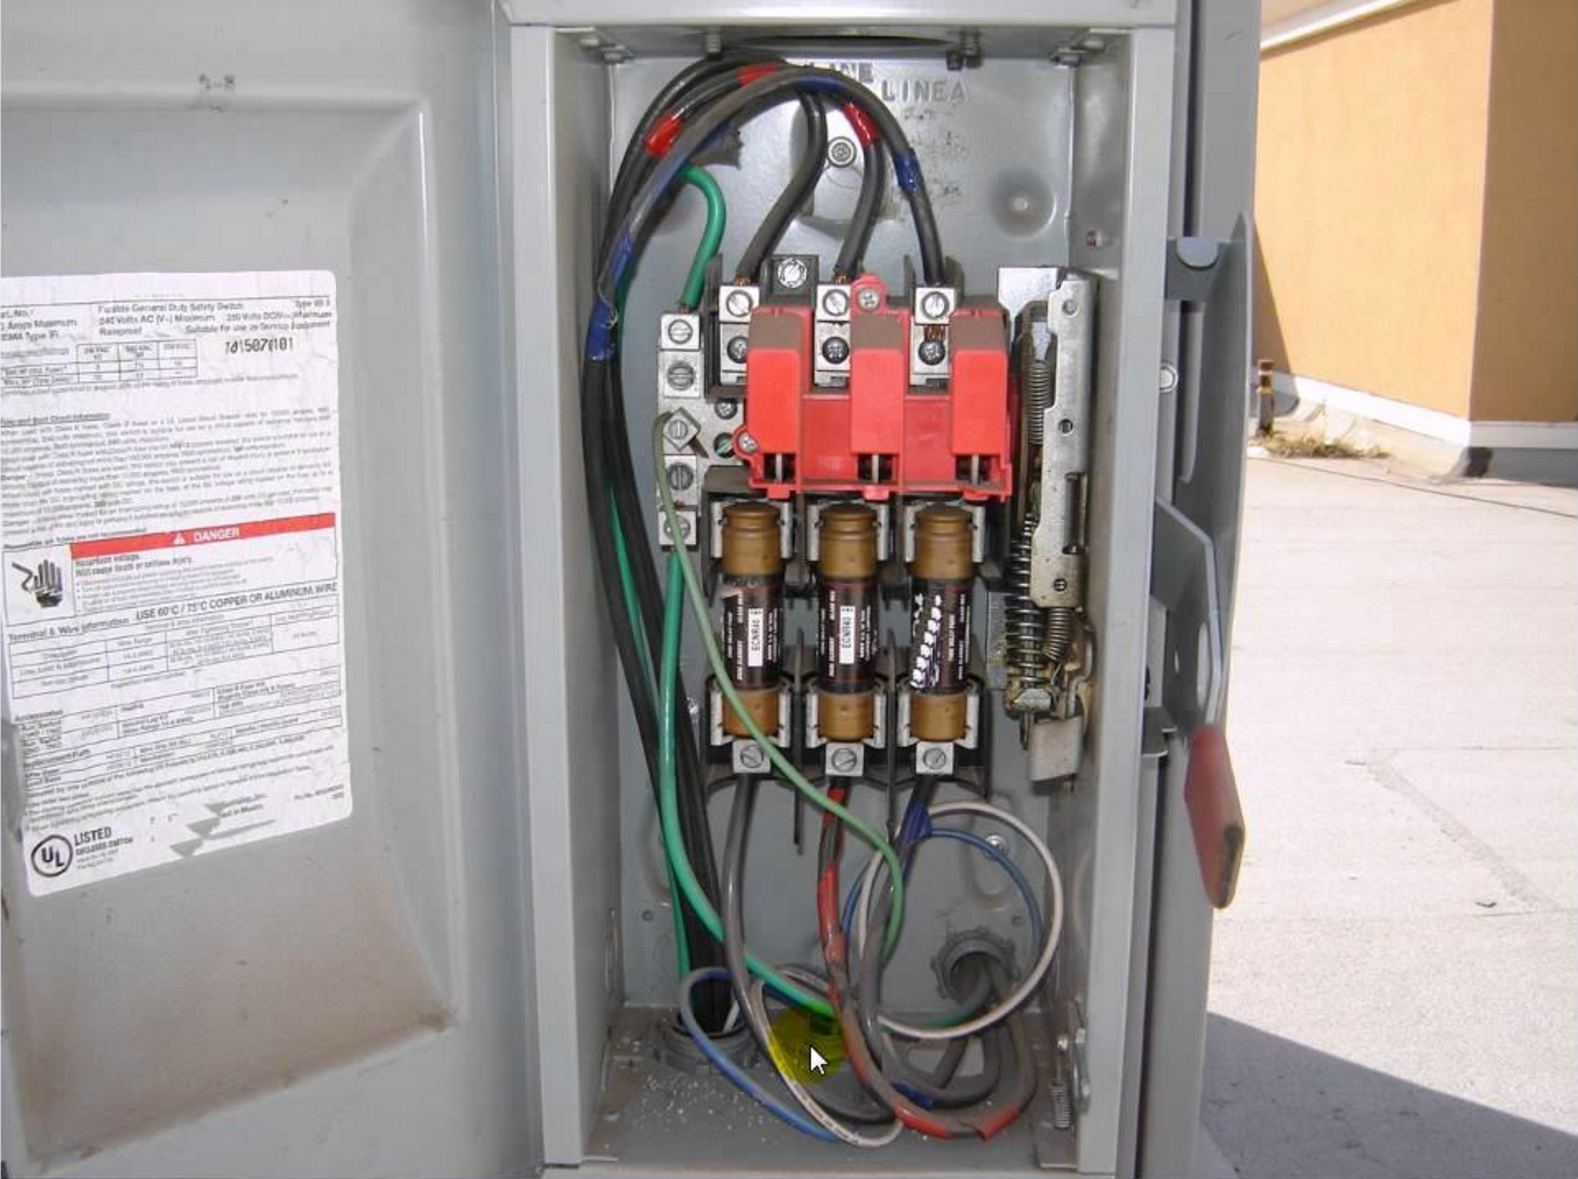 Diagnosing Issues In A 3 Phase Air Conditioning Compressor Hvac Brain Pump Down Refrigeration Wiring Diagram Electrical Disconnect Box